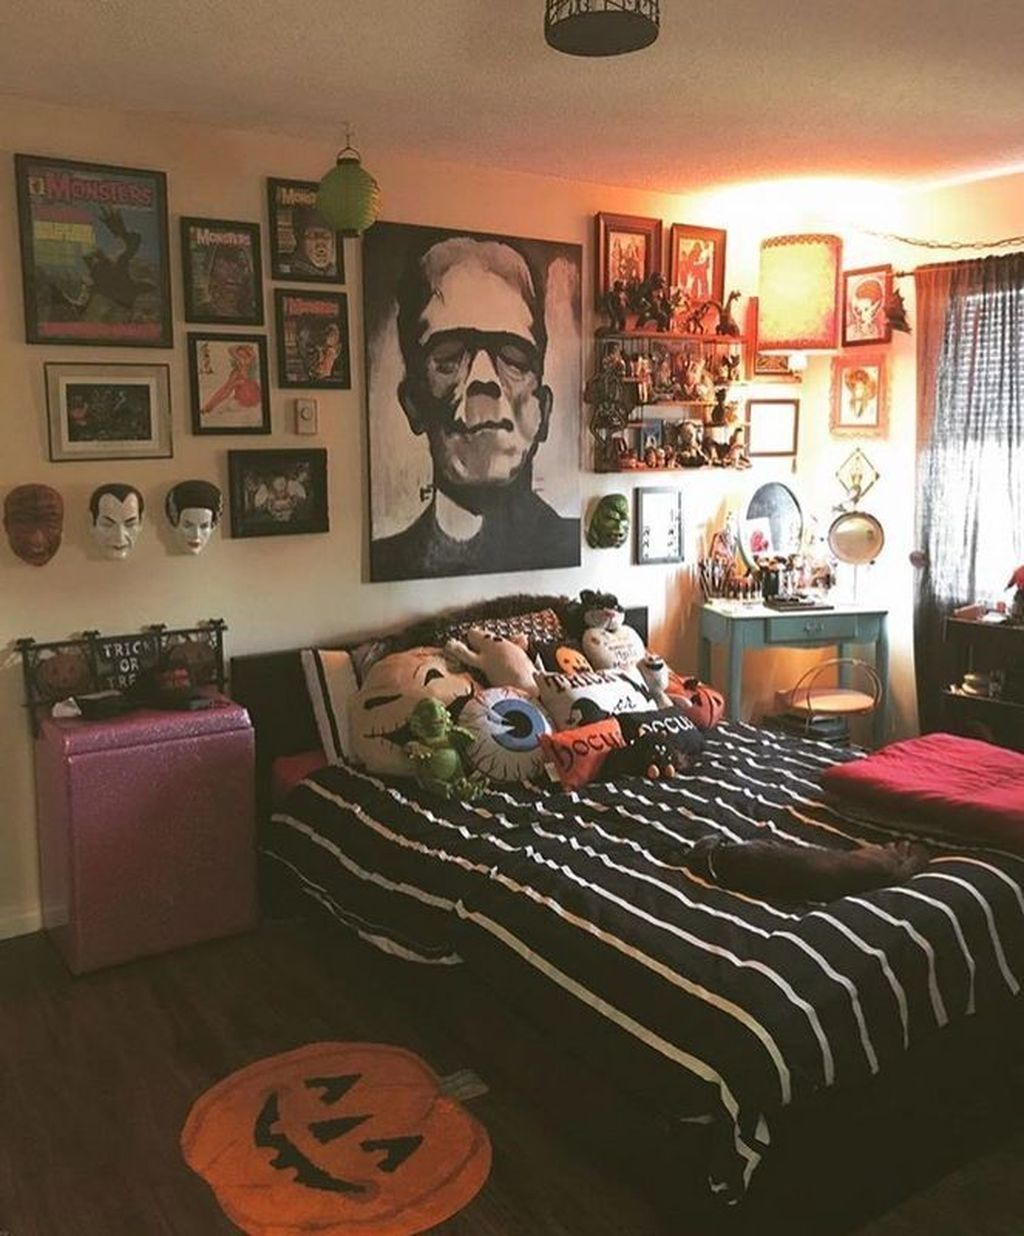 32 Spooky And Scary Halloween Bedroom Decorating Ideas Decoration Horreur Chambre Ado Style Idee Deco Chambre Ado Halloween decor ideas bedroom